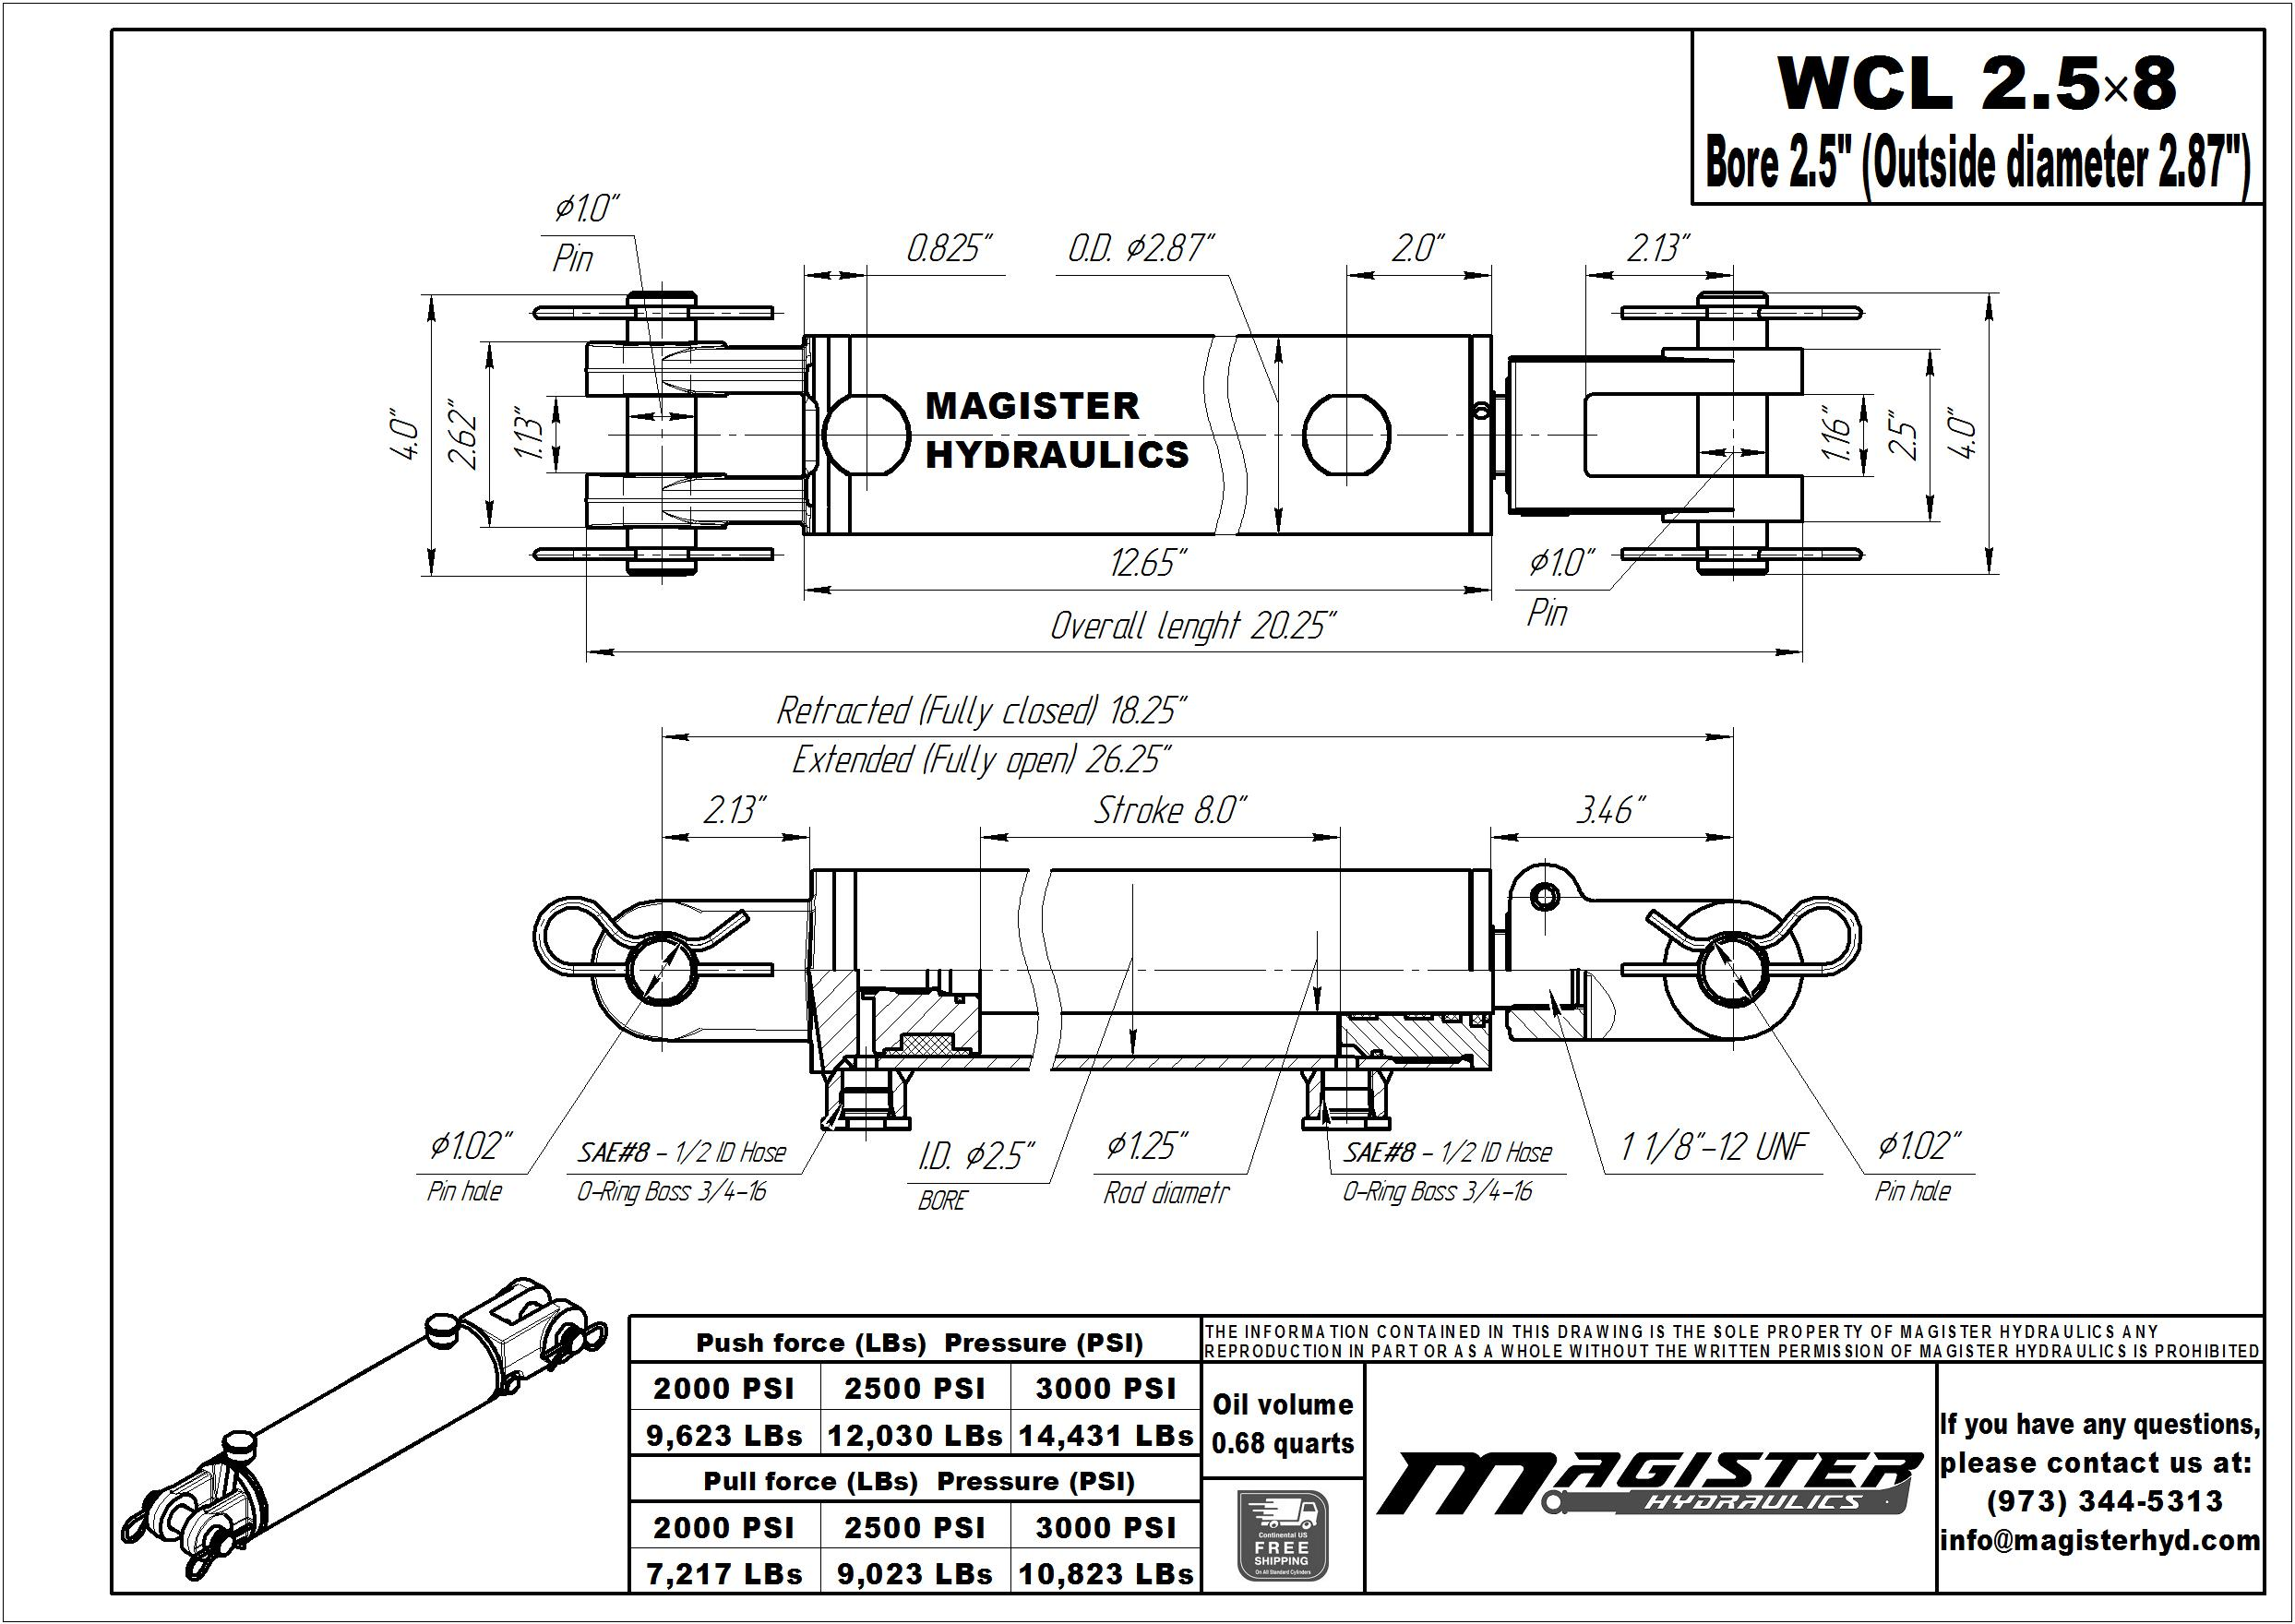 2.5 bore x 8 stroke hydraulic cylinder, welded clevis double acting cylinder | Magister Hydraulics